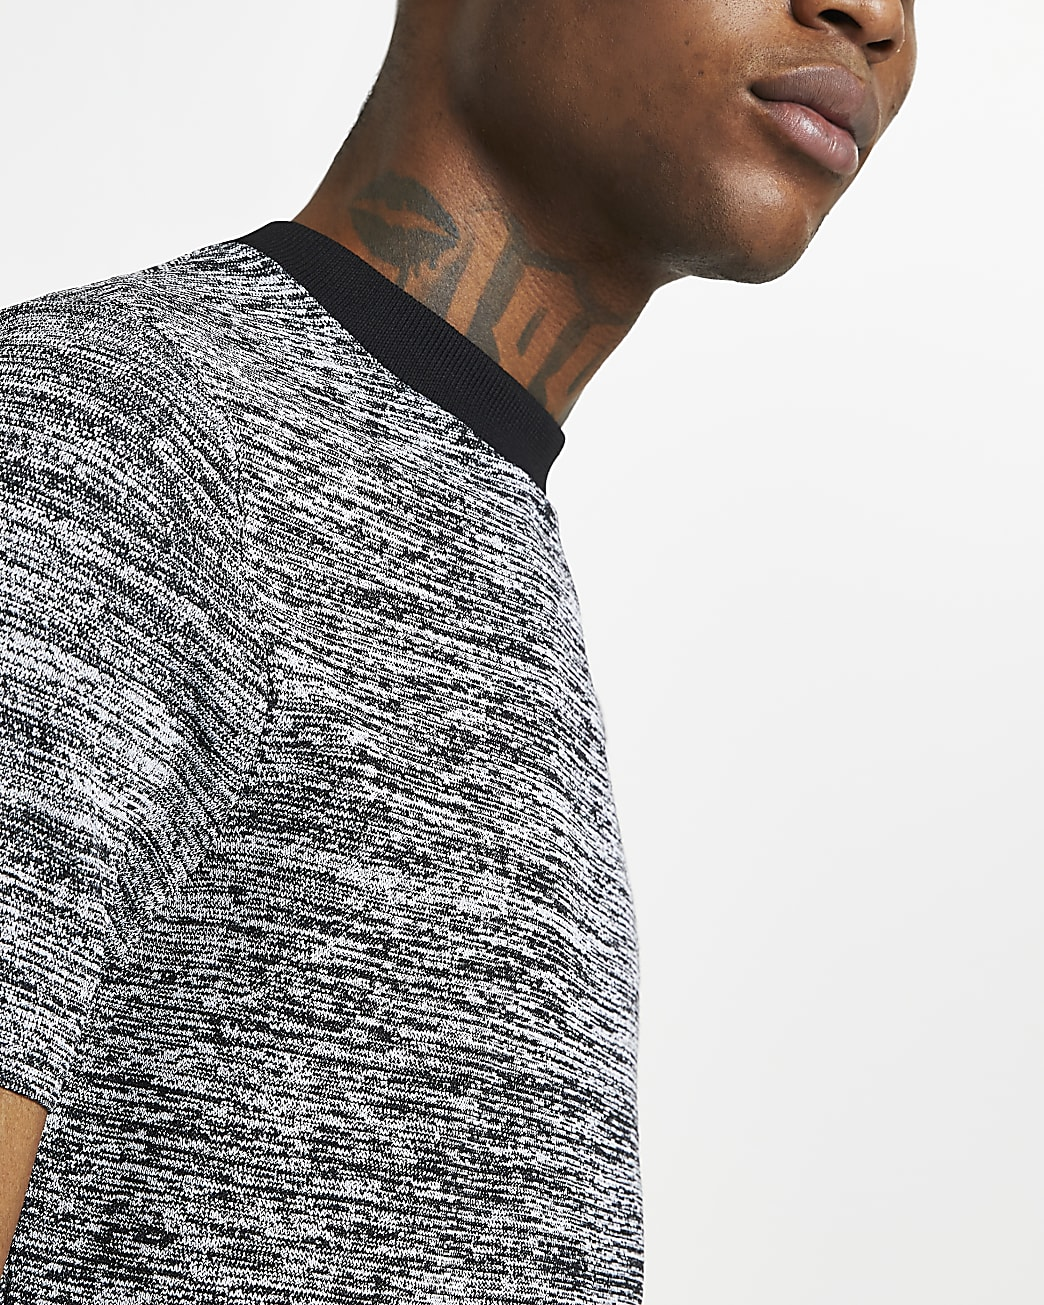 Black spacedye muscle fit knitted t-shirt